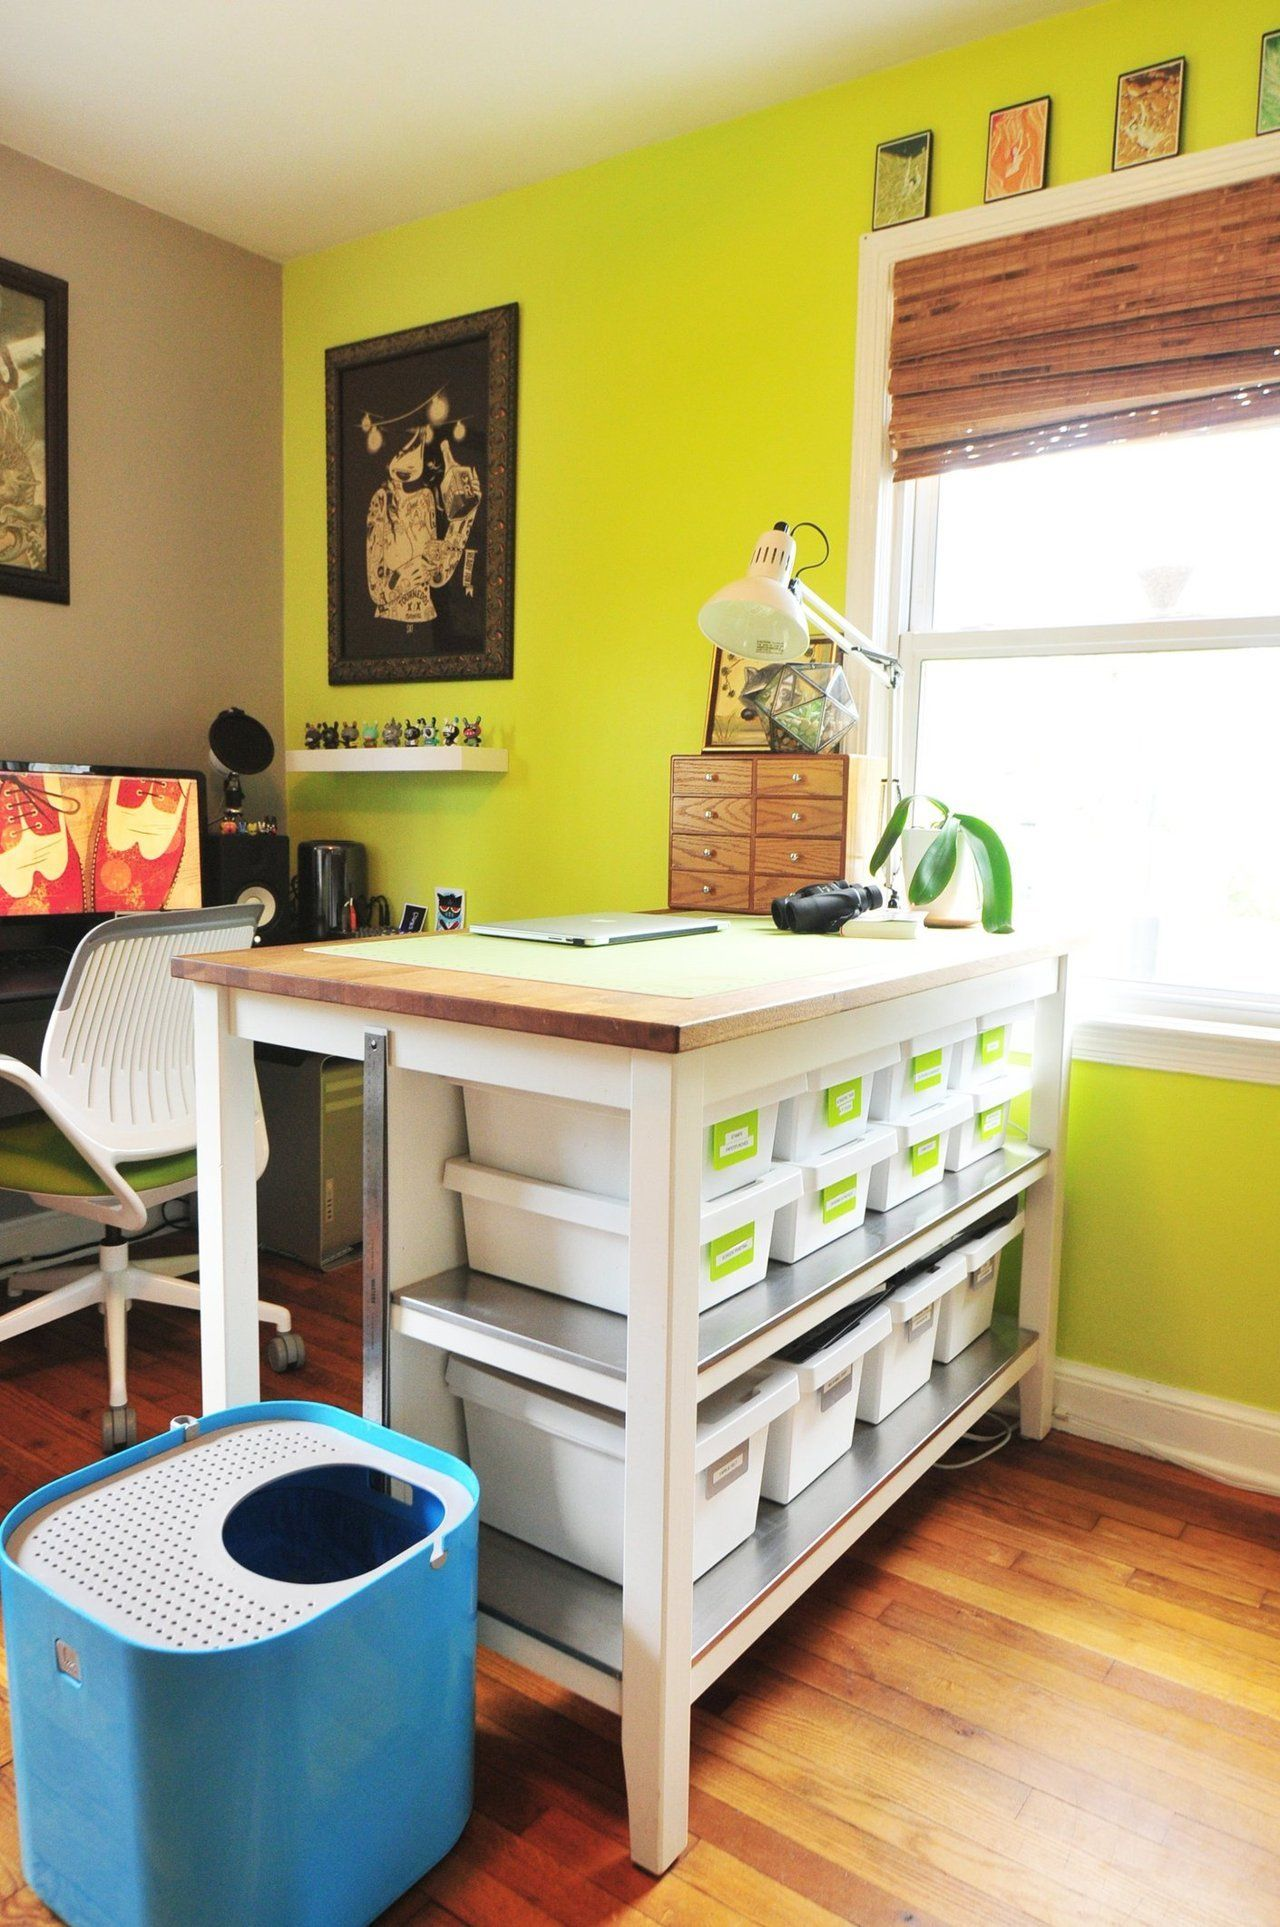 House Tour: A Colorful and Animated Abode | Spaces, Room and Ikea ...